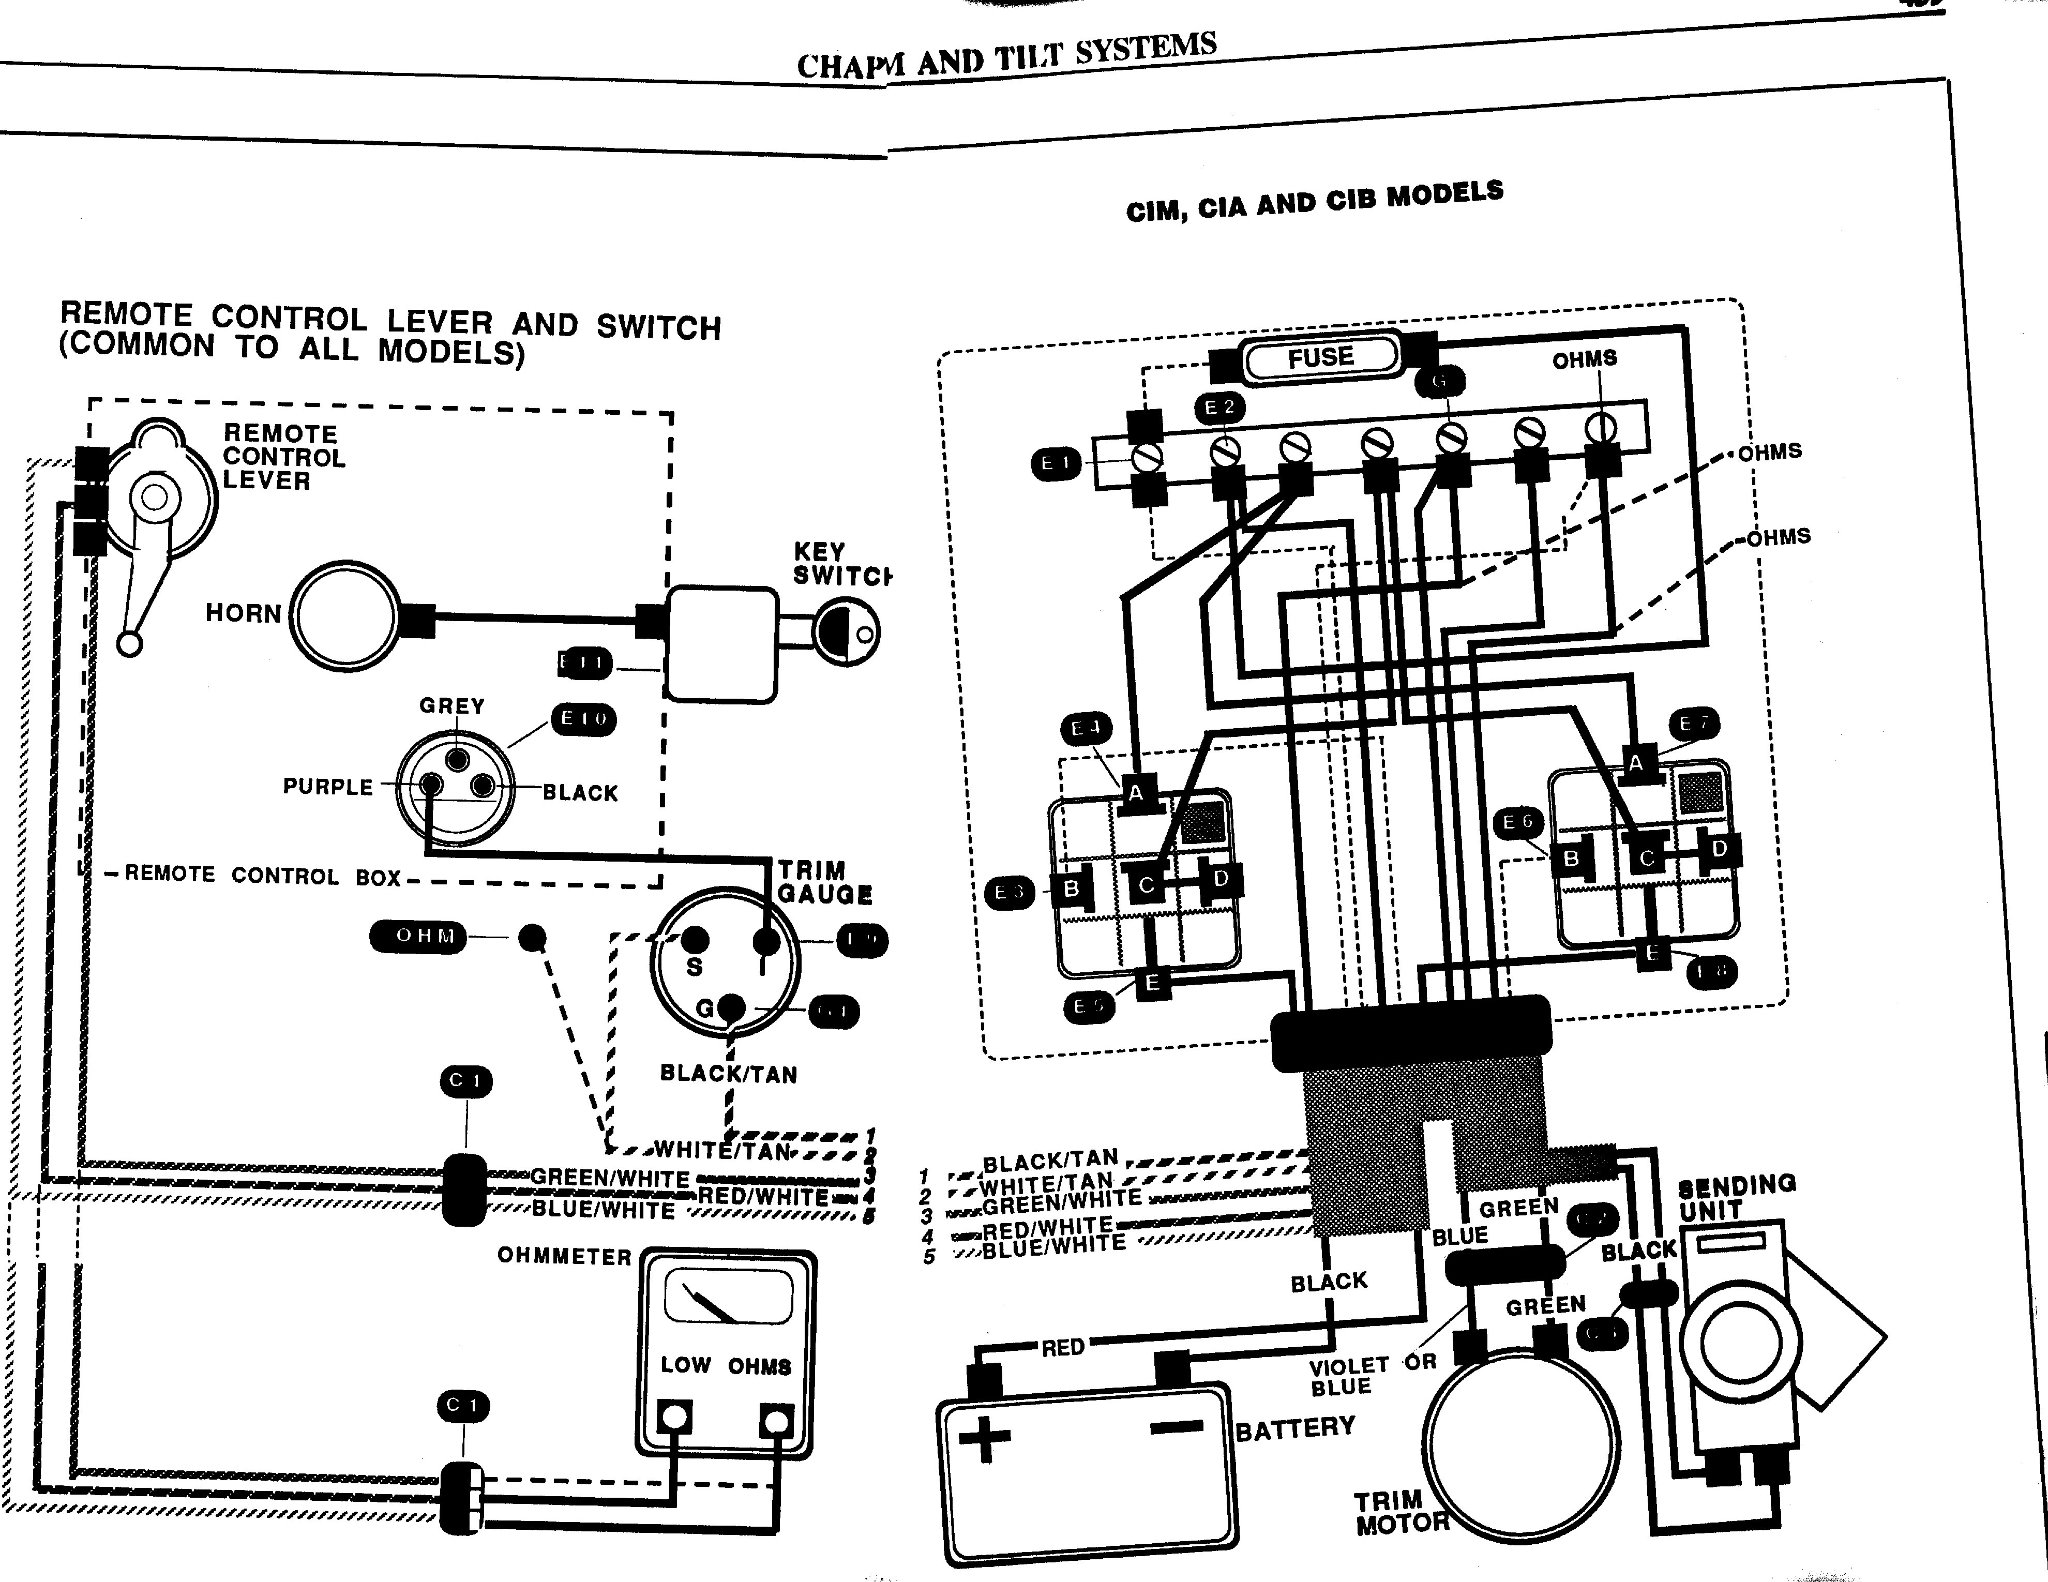 1997 mitsubishi mirage radio wiring diagram 4 wire relay 1995